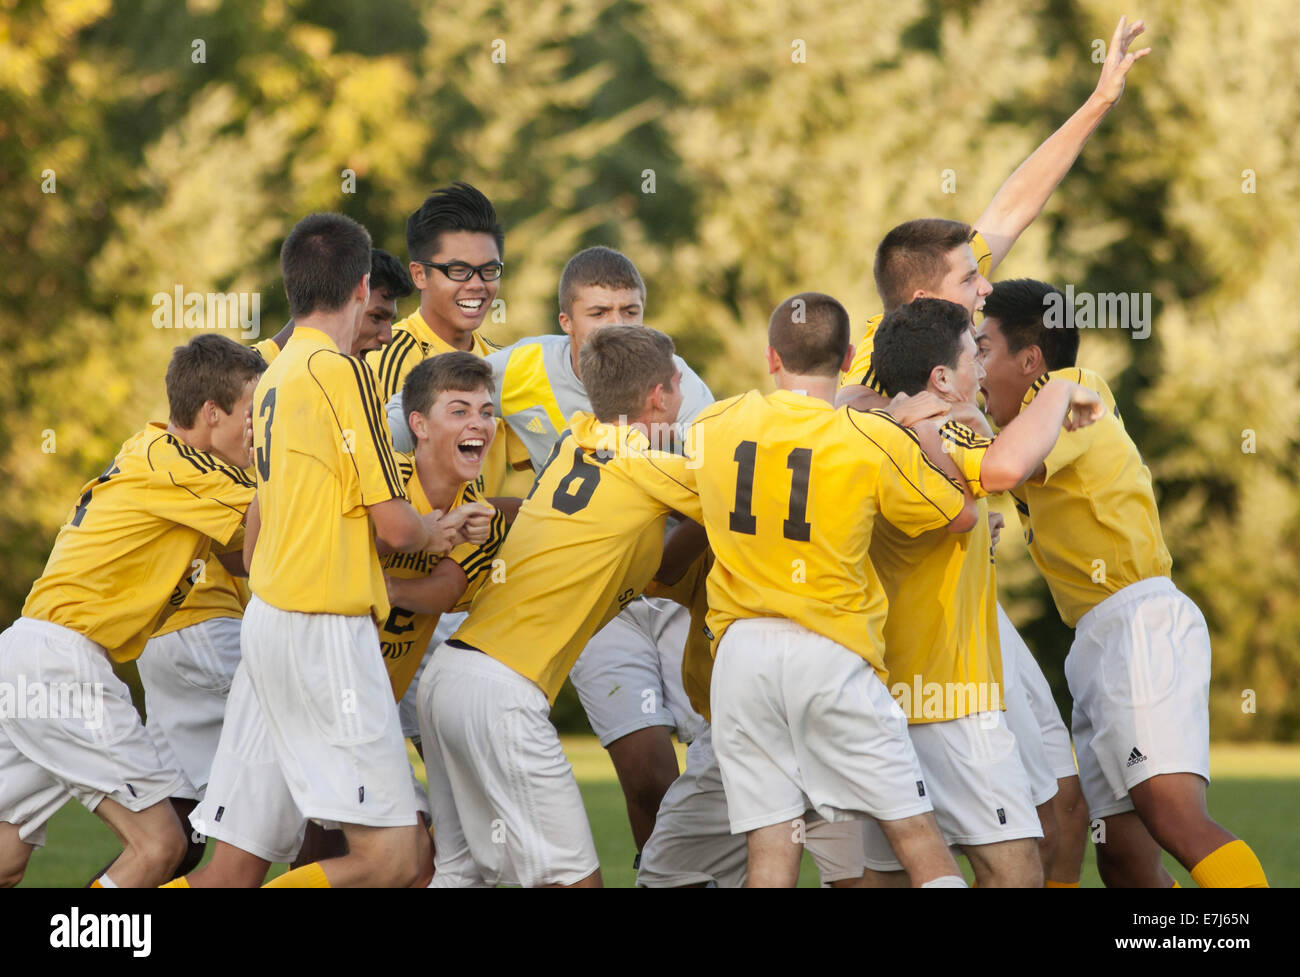 Thiells, New York, USA. 18th Sep, 2014. Clarkstown South players celebrate after scoring with 6.7 seconds left in - Stock Image